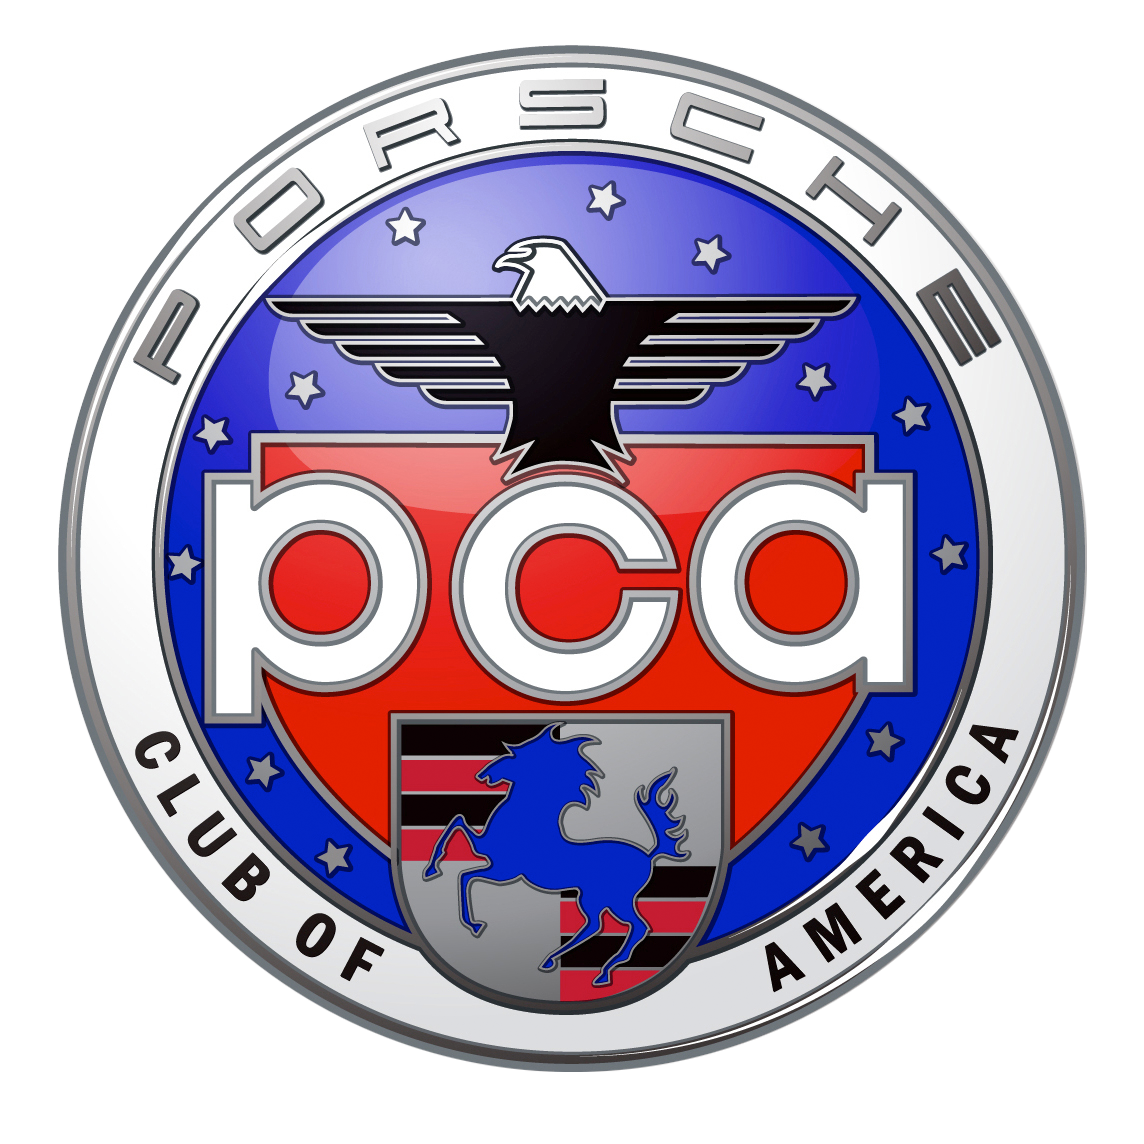 Porsche Club of America Club Racing